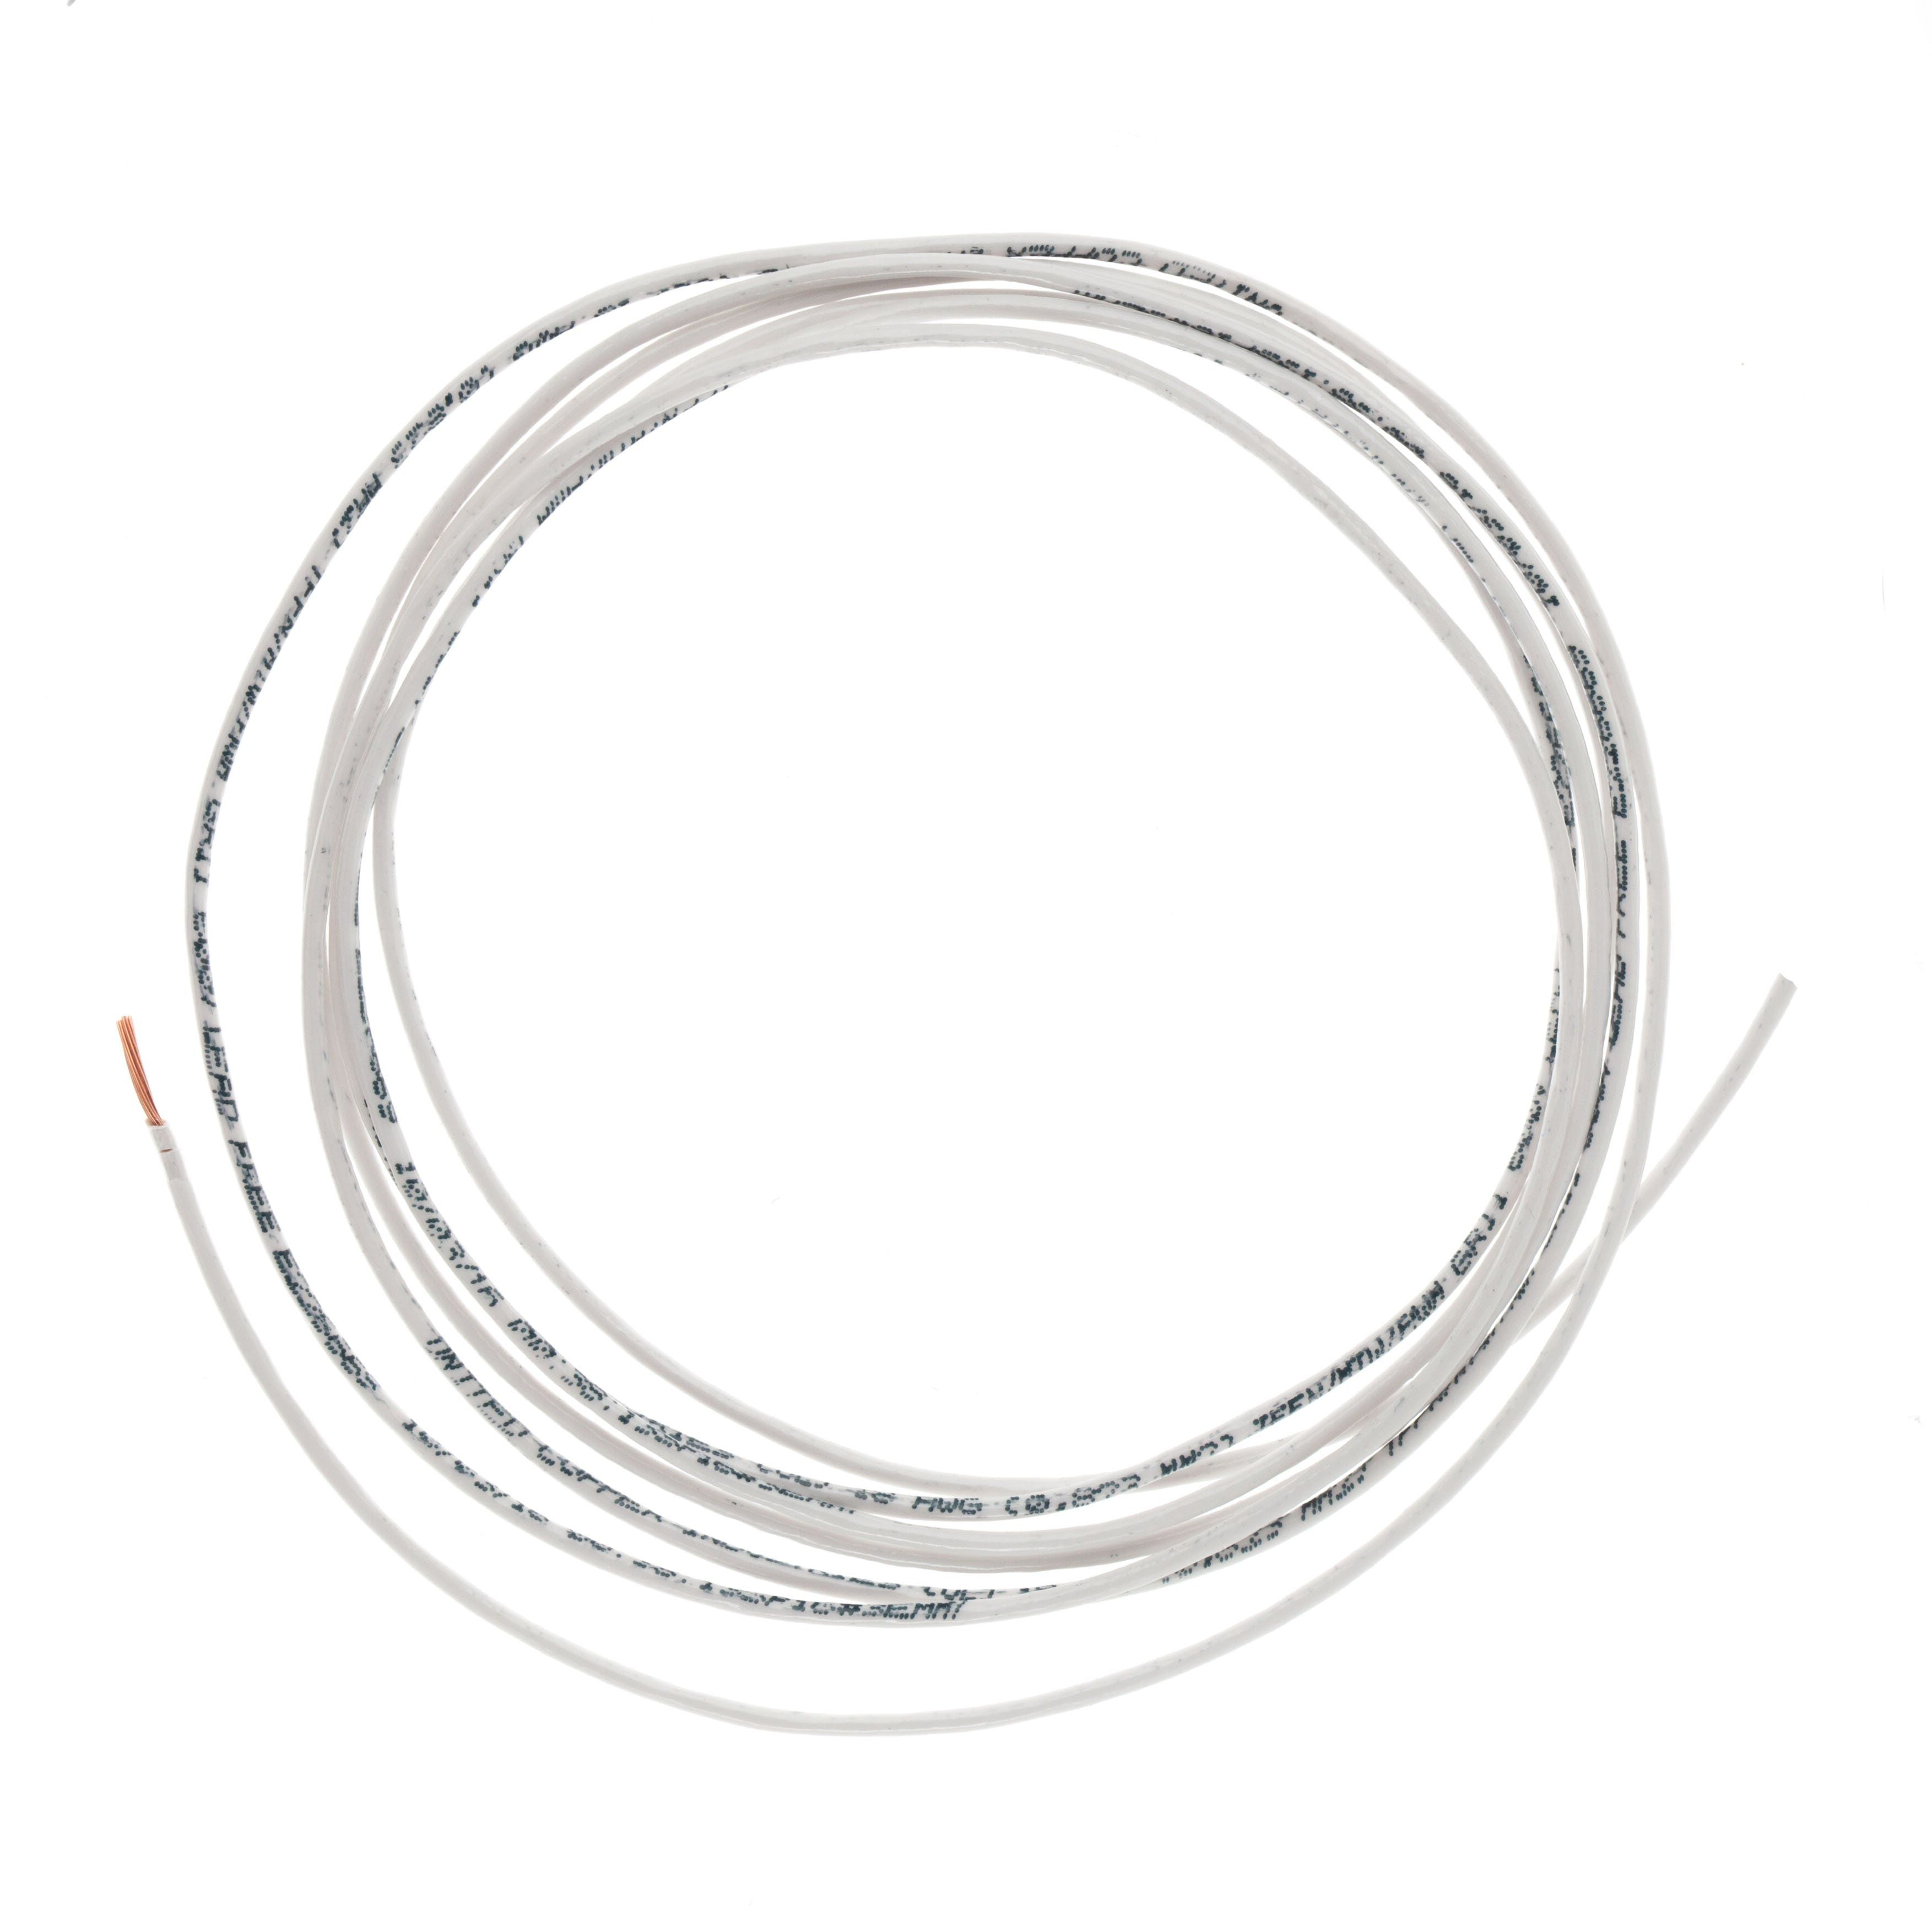 18g Stranded Copper Conductor Wire | Color Cord Company